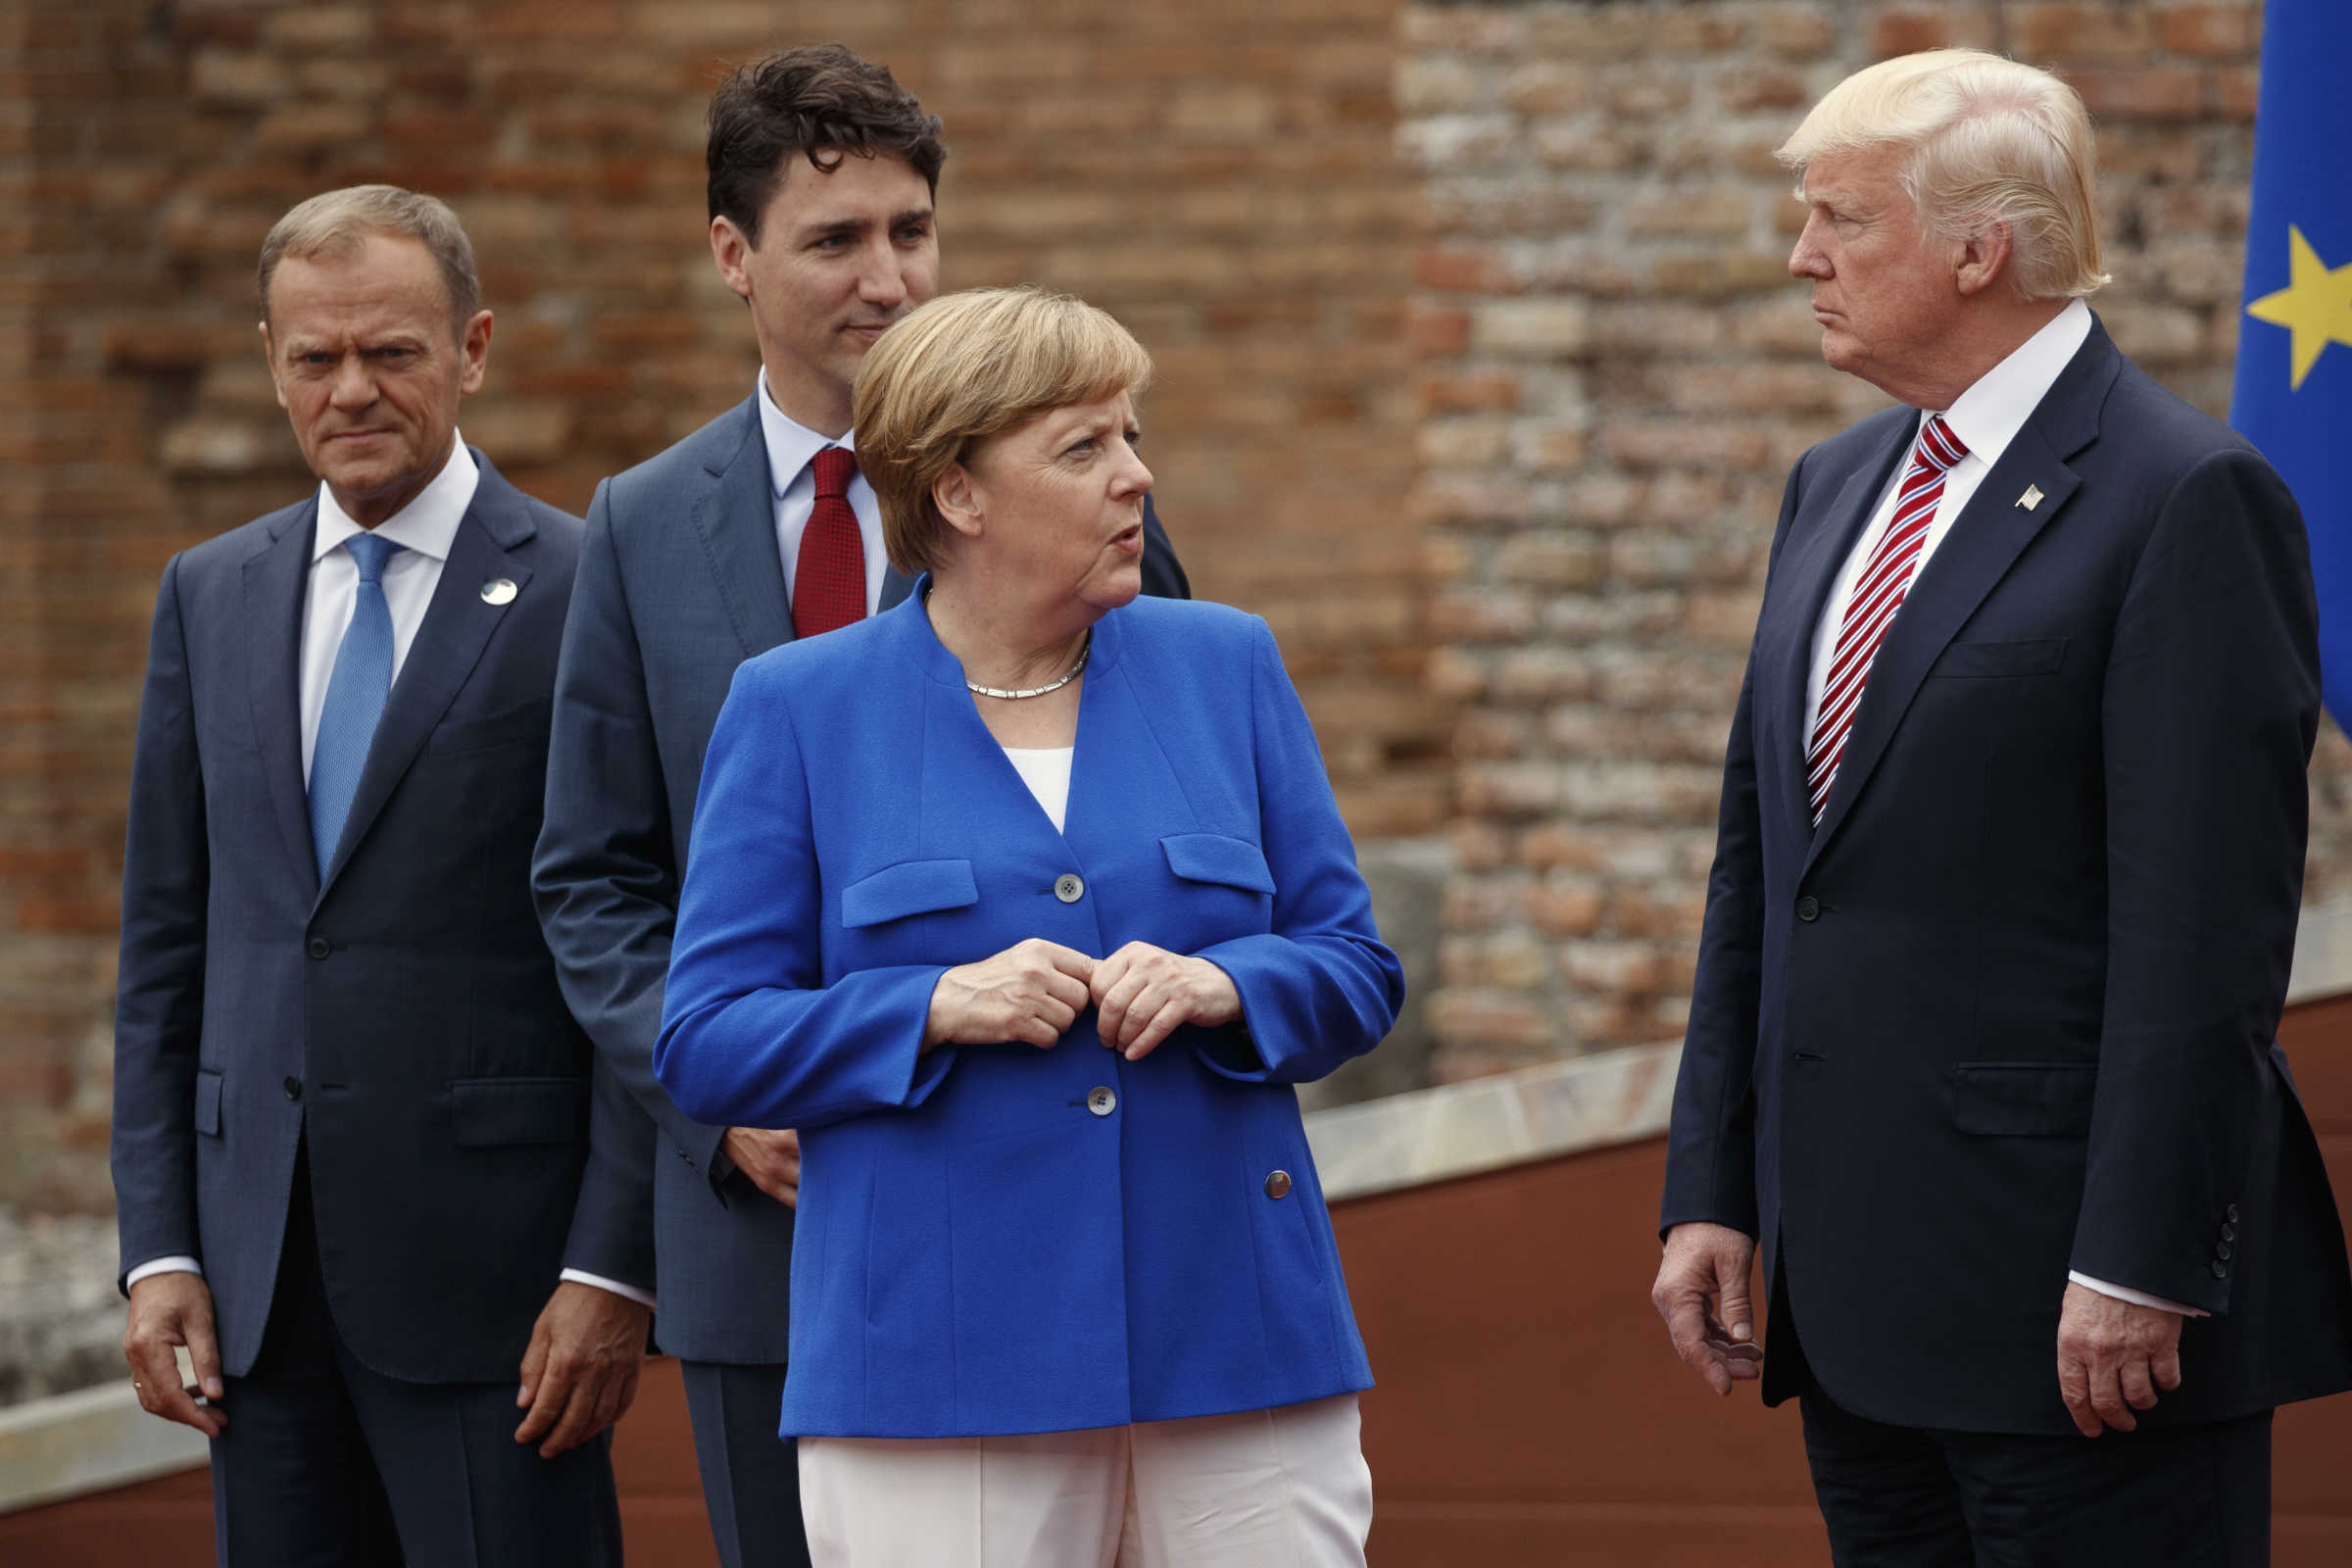 German Chancellor Angela Merkel talks with President Donald Trump during a family photo with G7 leaders at the Ancient Greek Theater of Taormina, Italy.